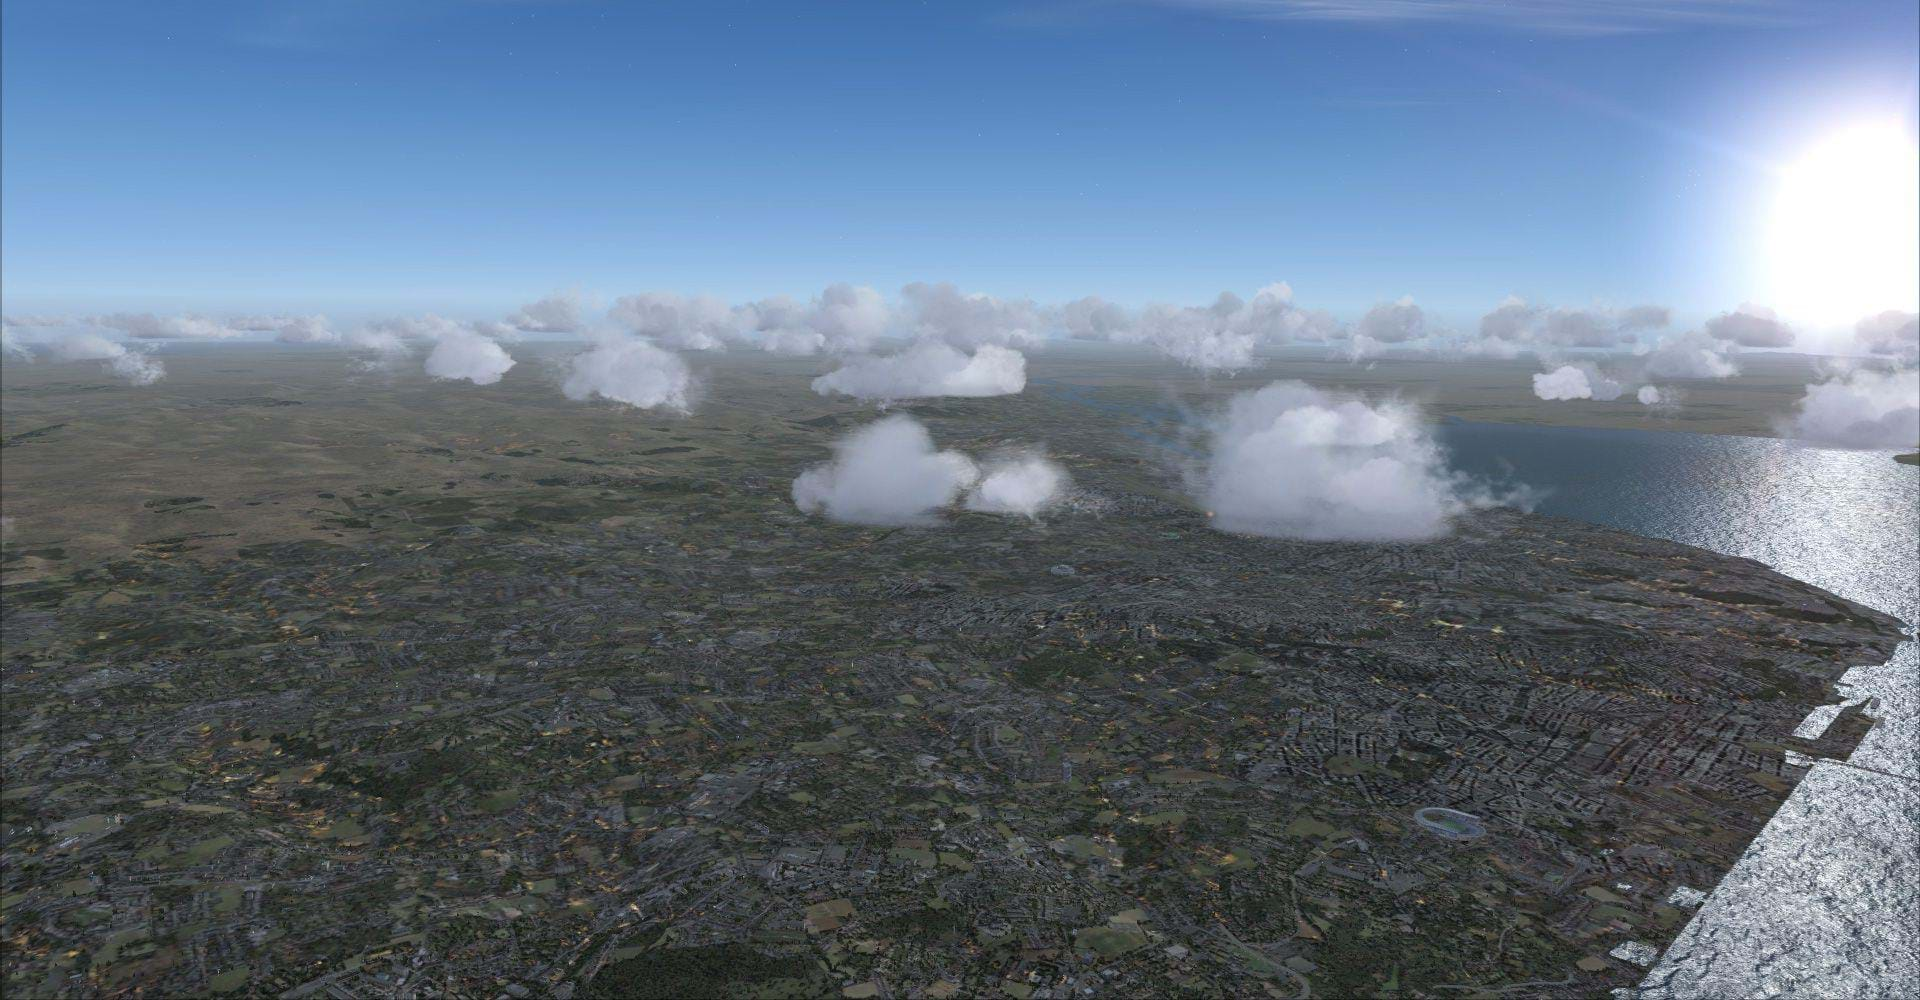 The ultimate FSX and P3D scenery: ORBX Global Vector and